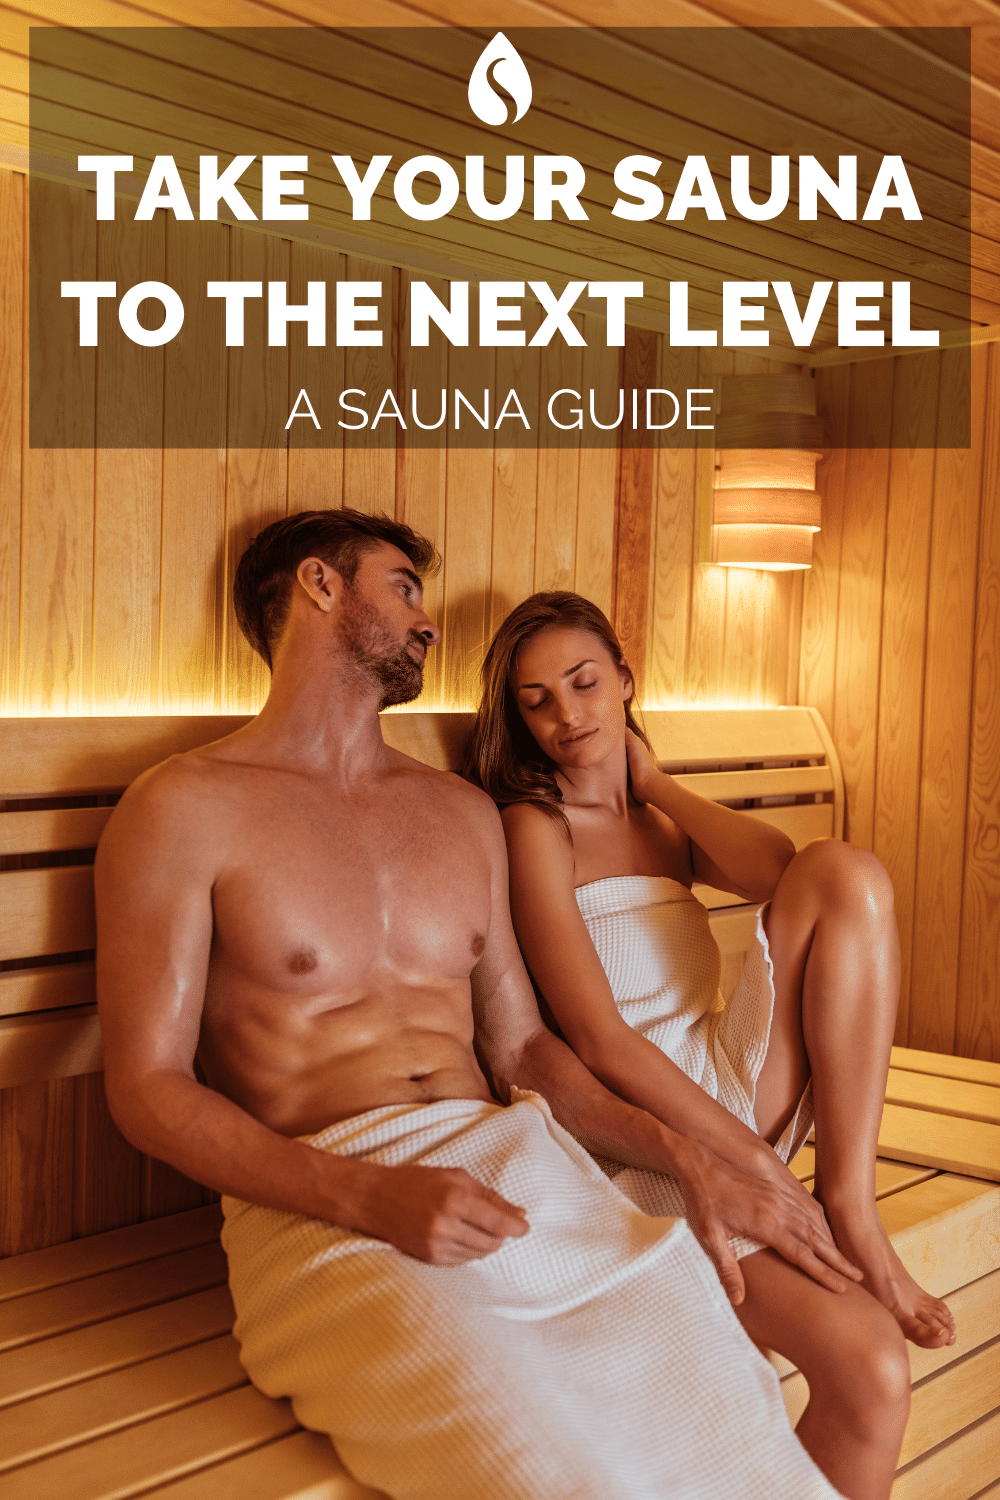 Take Your Sauna to The Next Level